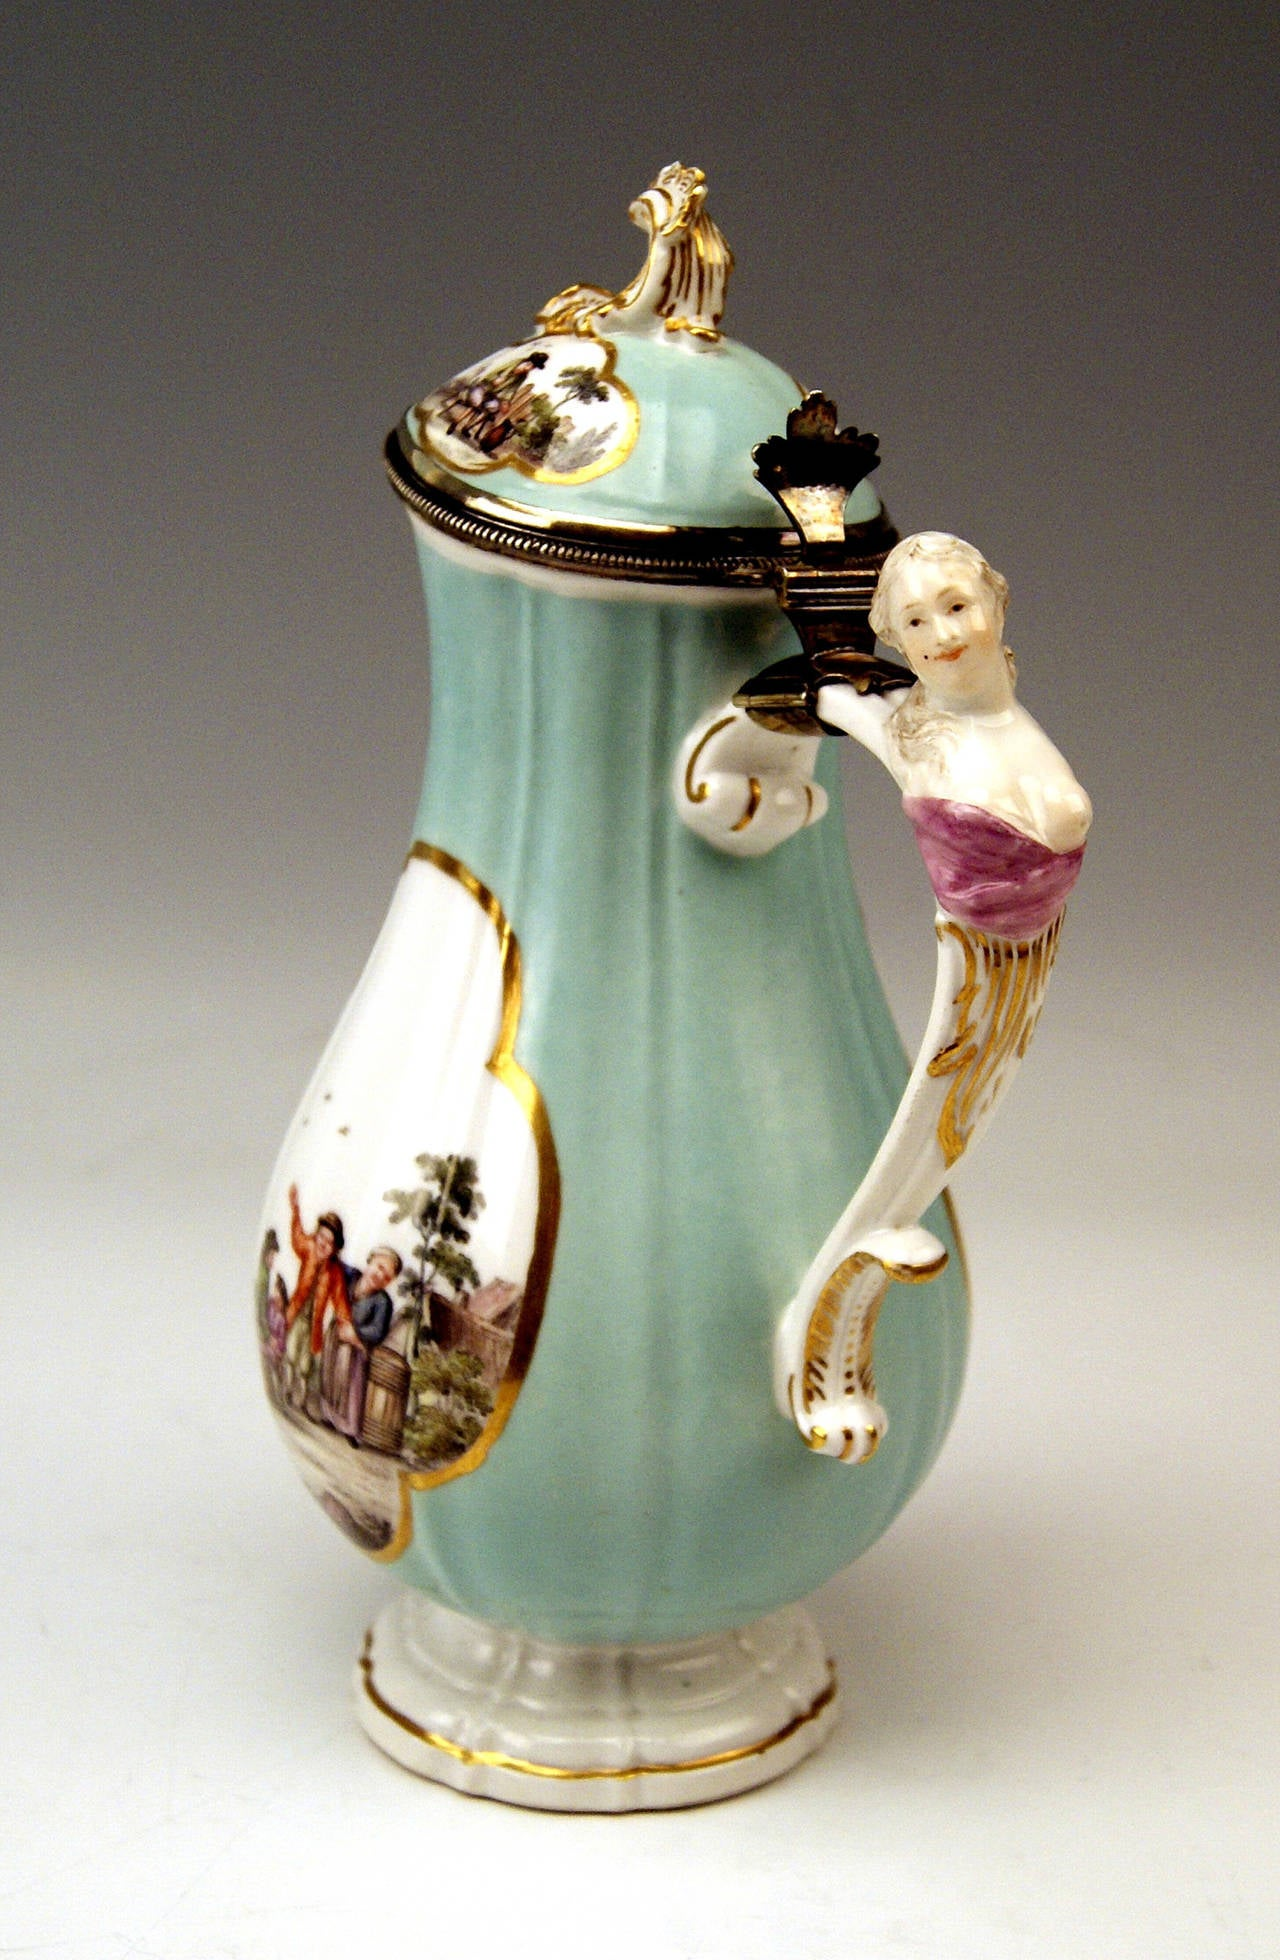 Meissen gorgeous as well as rare LIDDED COFFEE POT.    DATING:      ROCOCO PERIOD    MADE FIRST HALF OF 18th CENTURY   (before 1750-56) MATERIAL:  white porcelain, glossy finish, finest multicolored painting (figural type) TECHNIQUE: